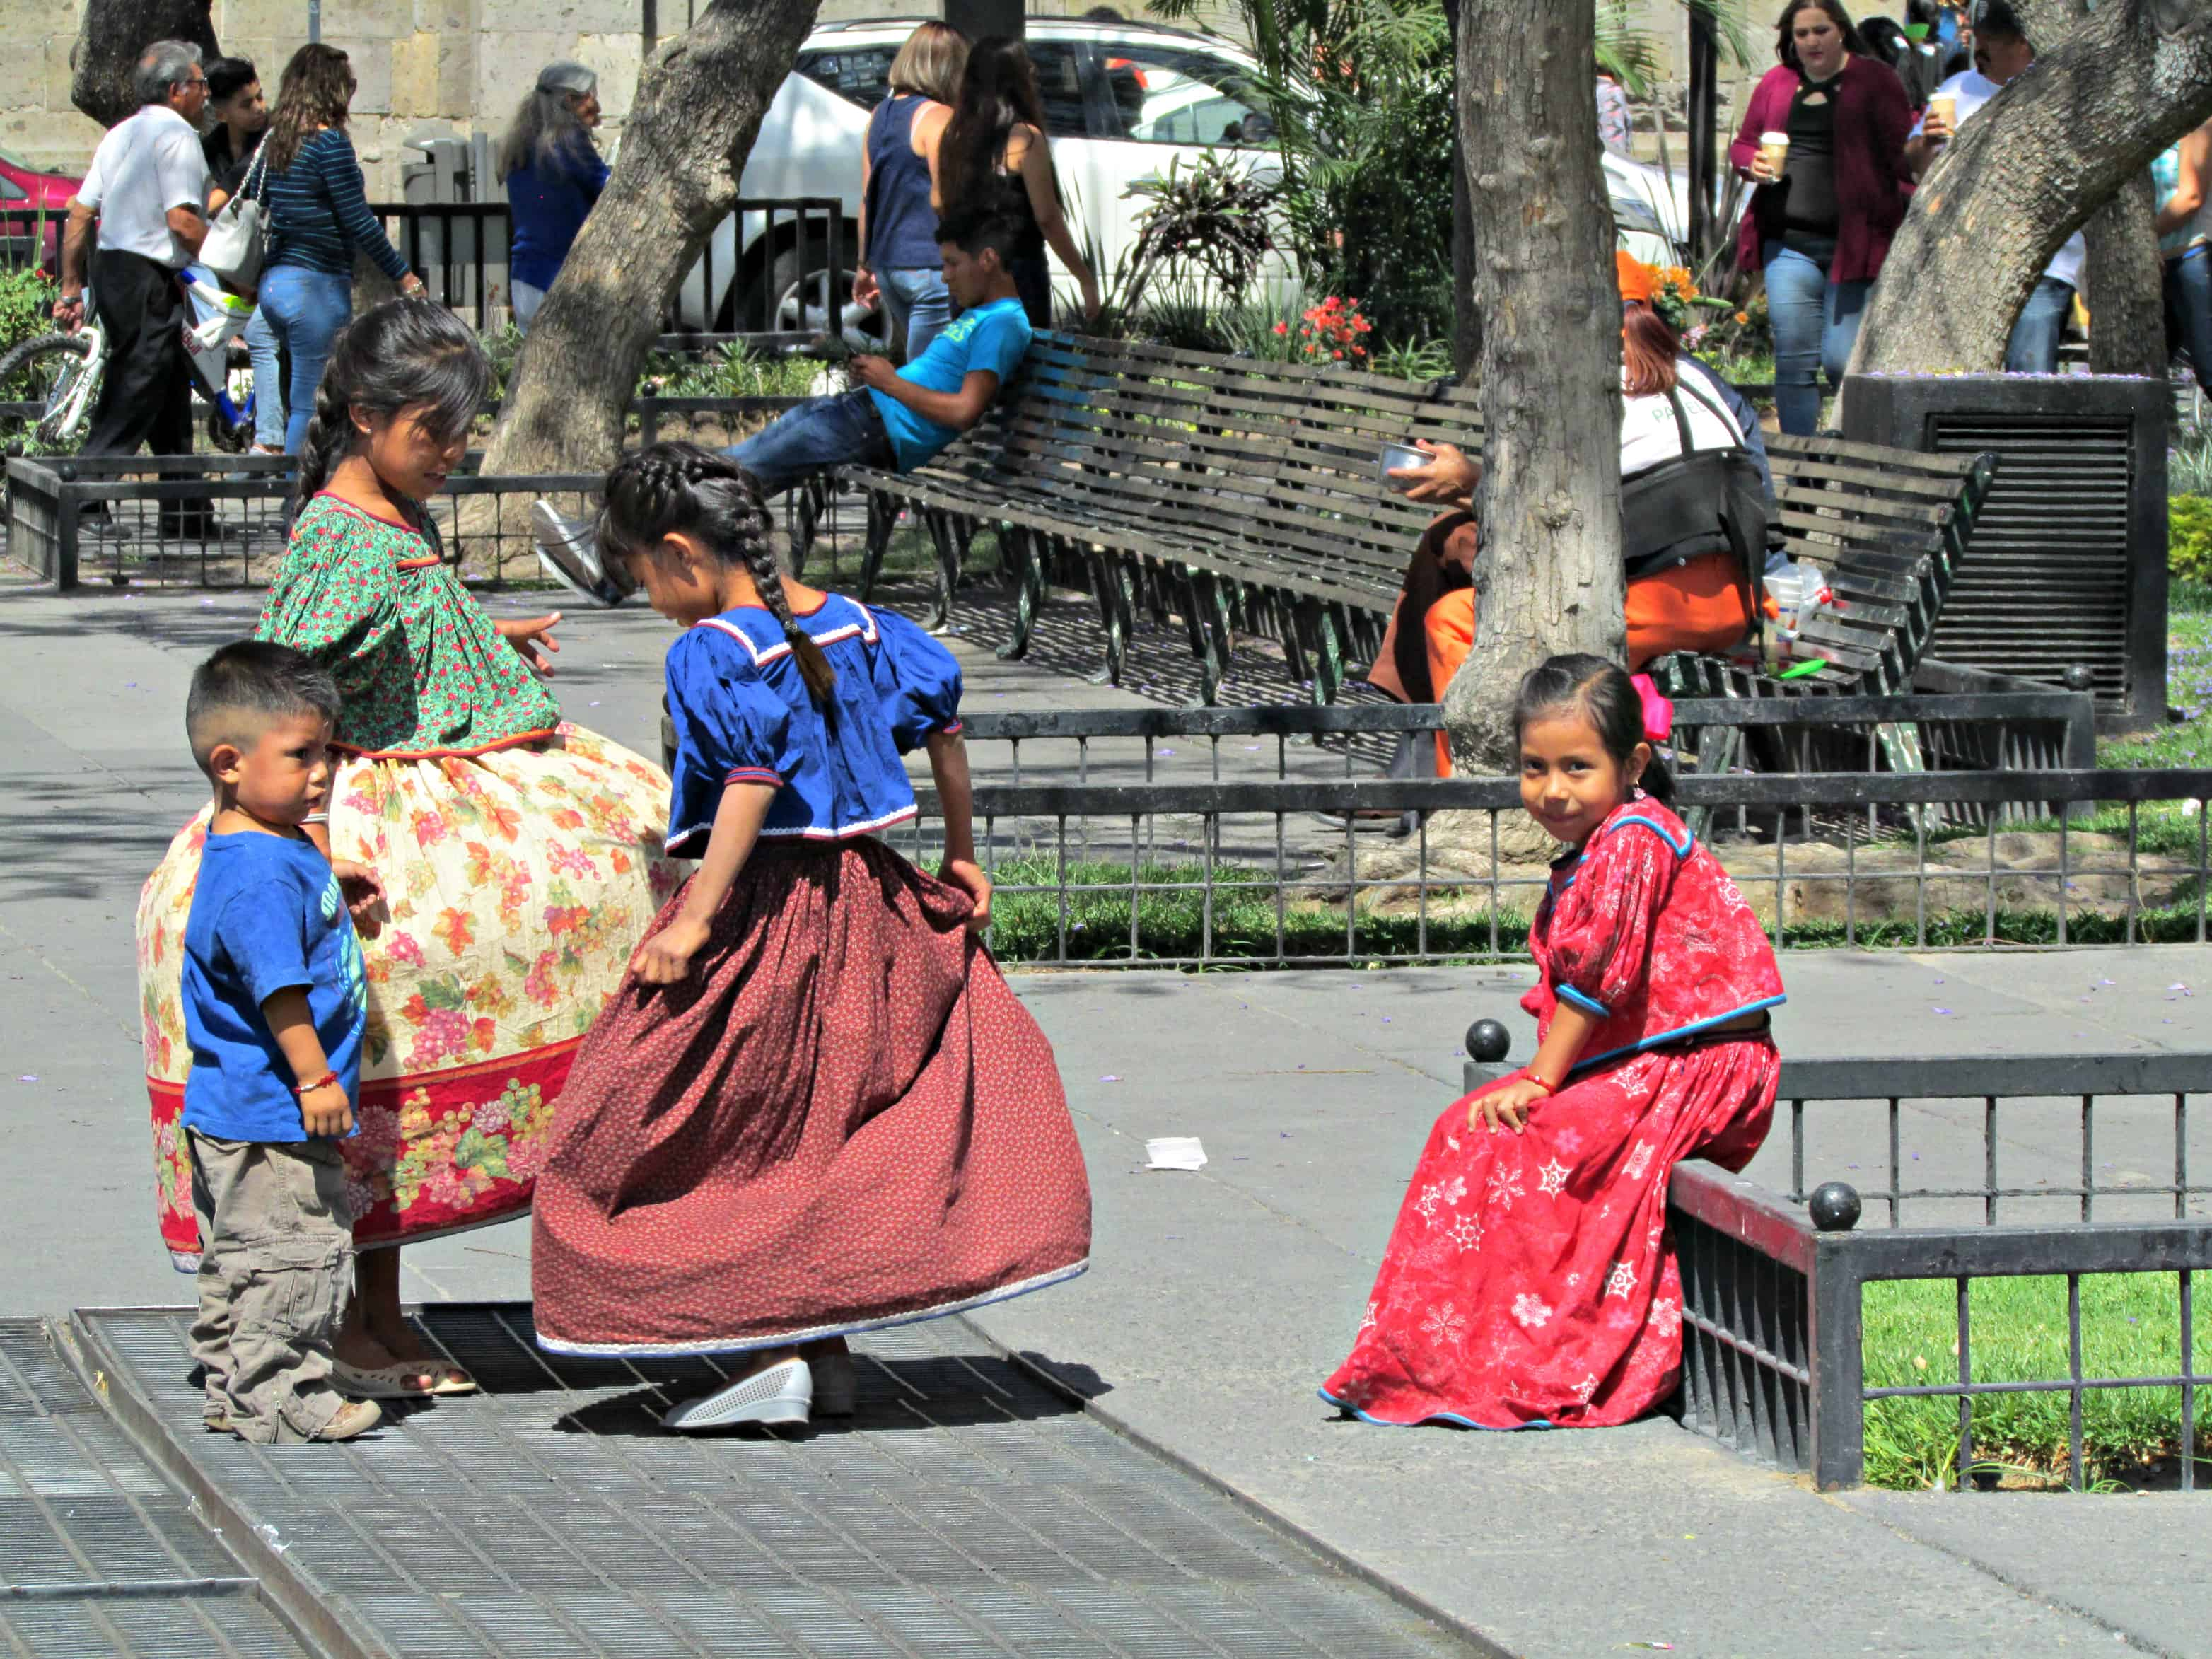 Children playing in Guadalajara